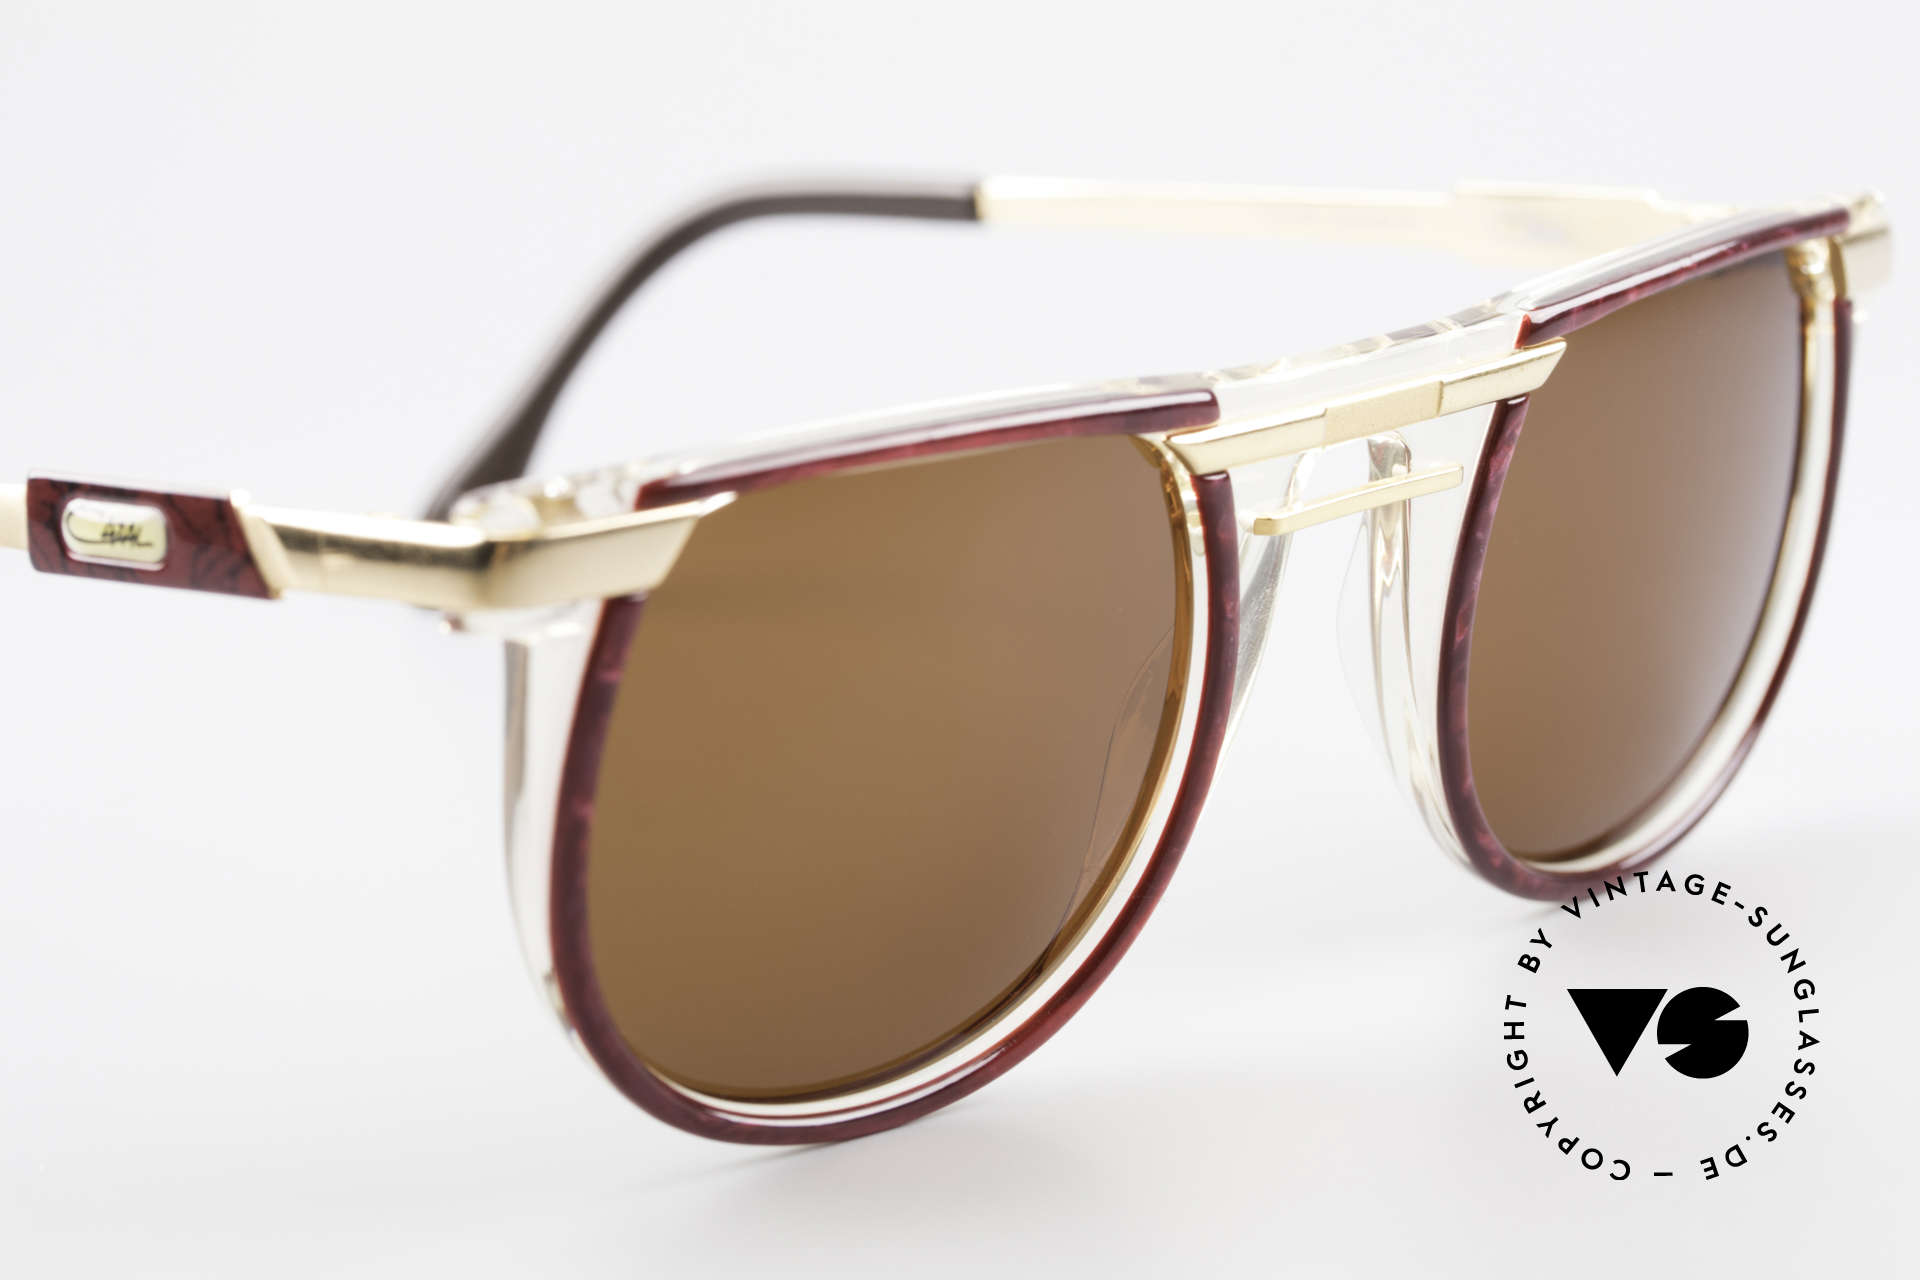 Cazal 647 90's Vintage Designer Shades, unworn, NOS (like all our vintage CAZAL eyewear), Made for Men and Women